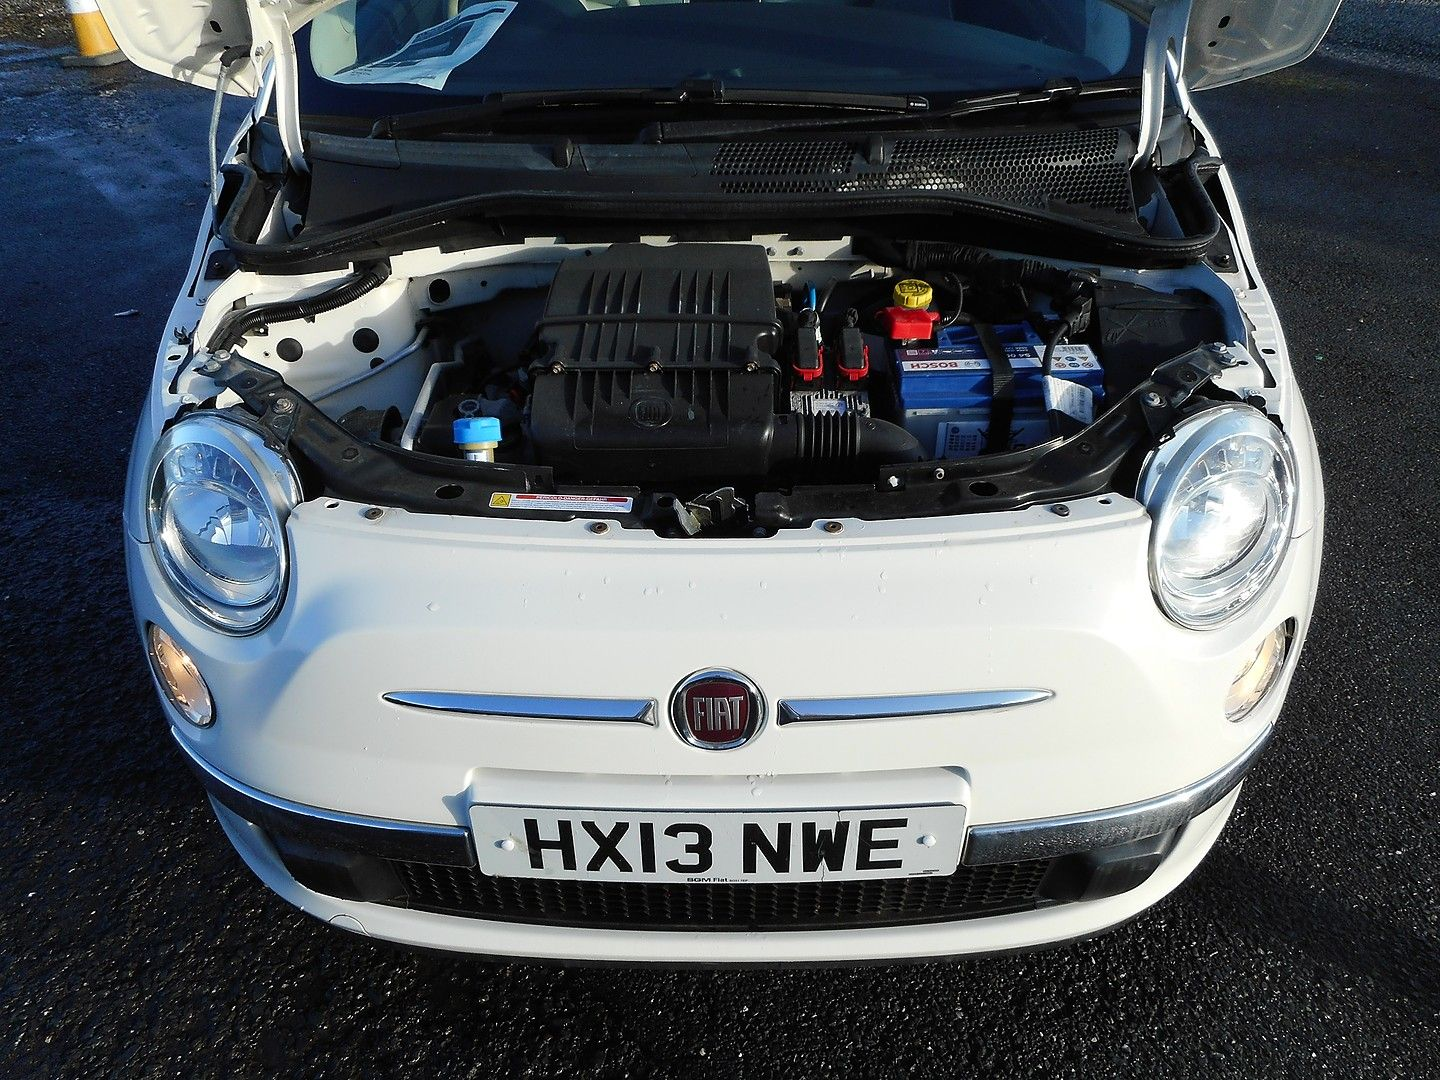 FIAT 500 1.2i Lounge S/S automatic (2013) - Picture 22